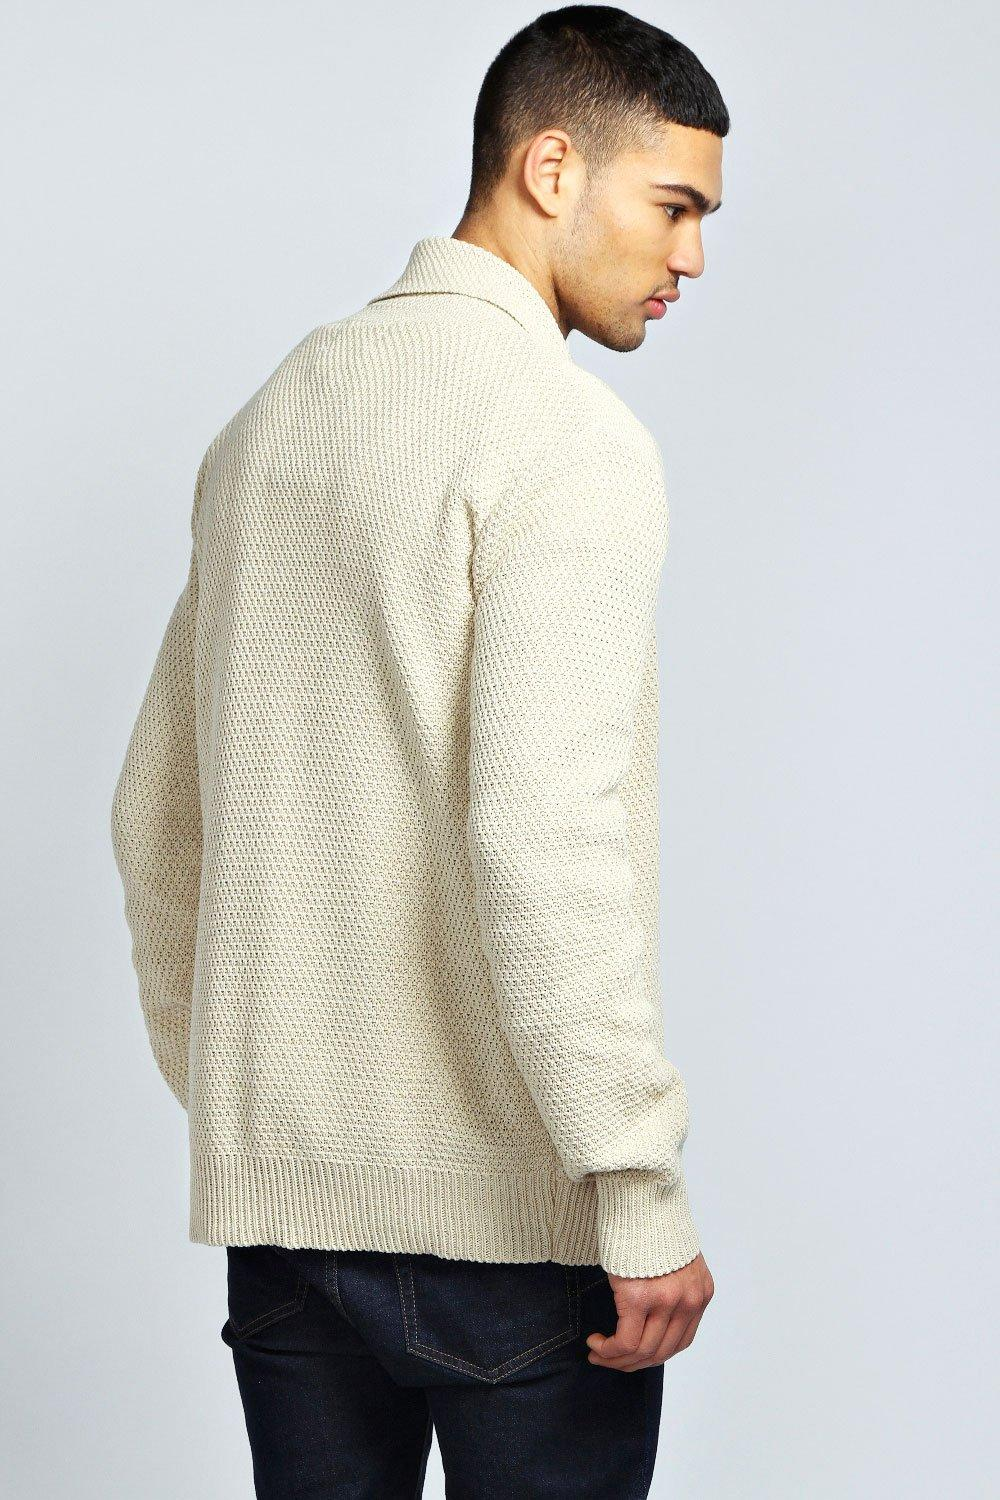 HONEY COMB CARDIGAN